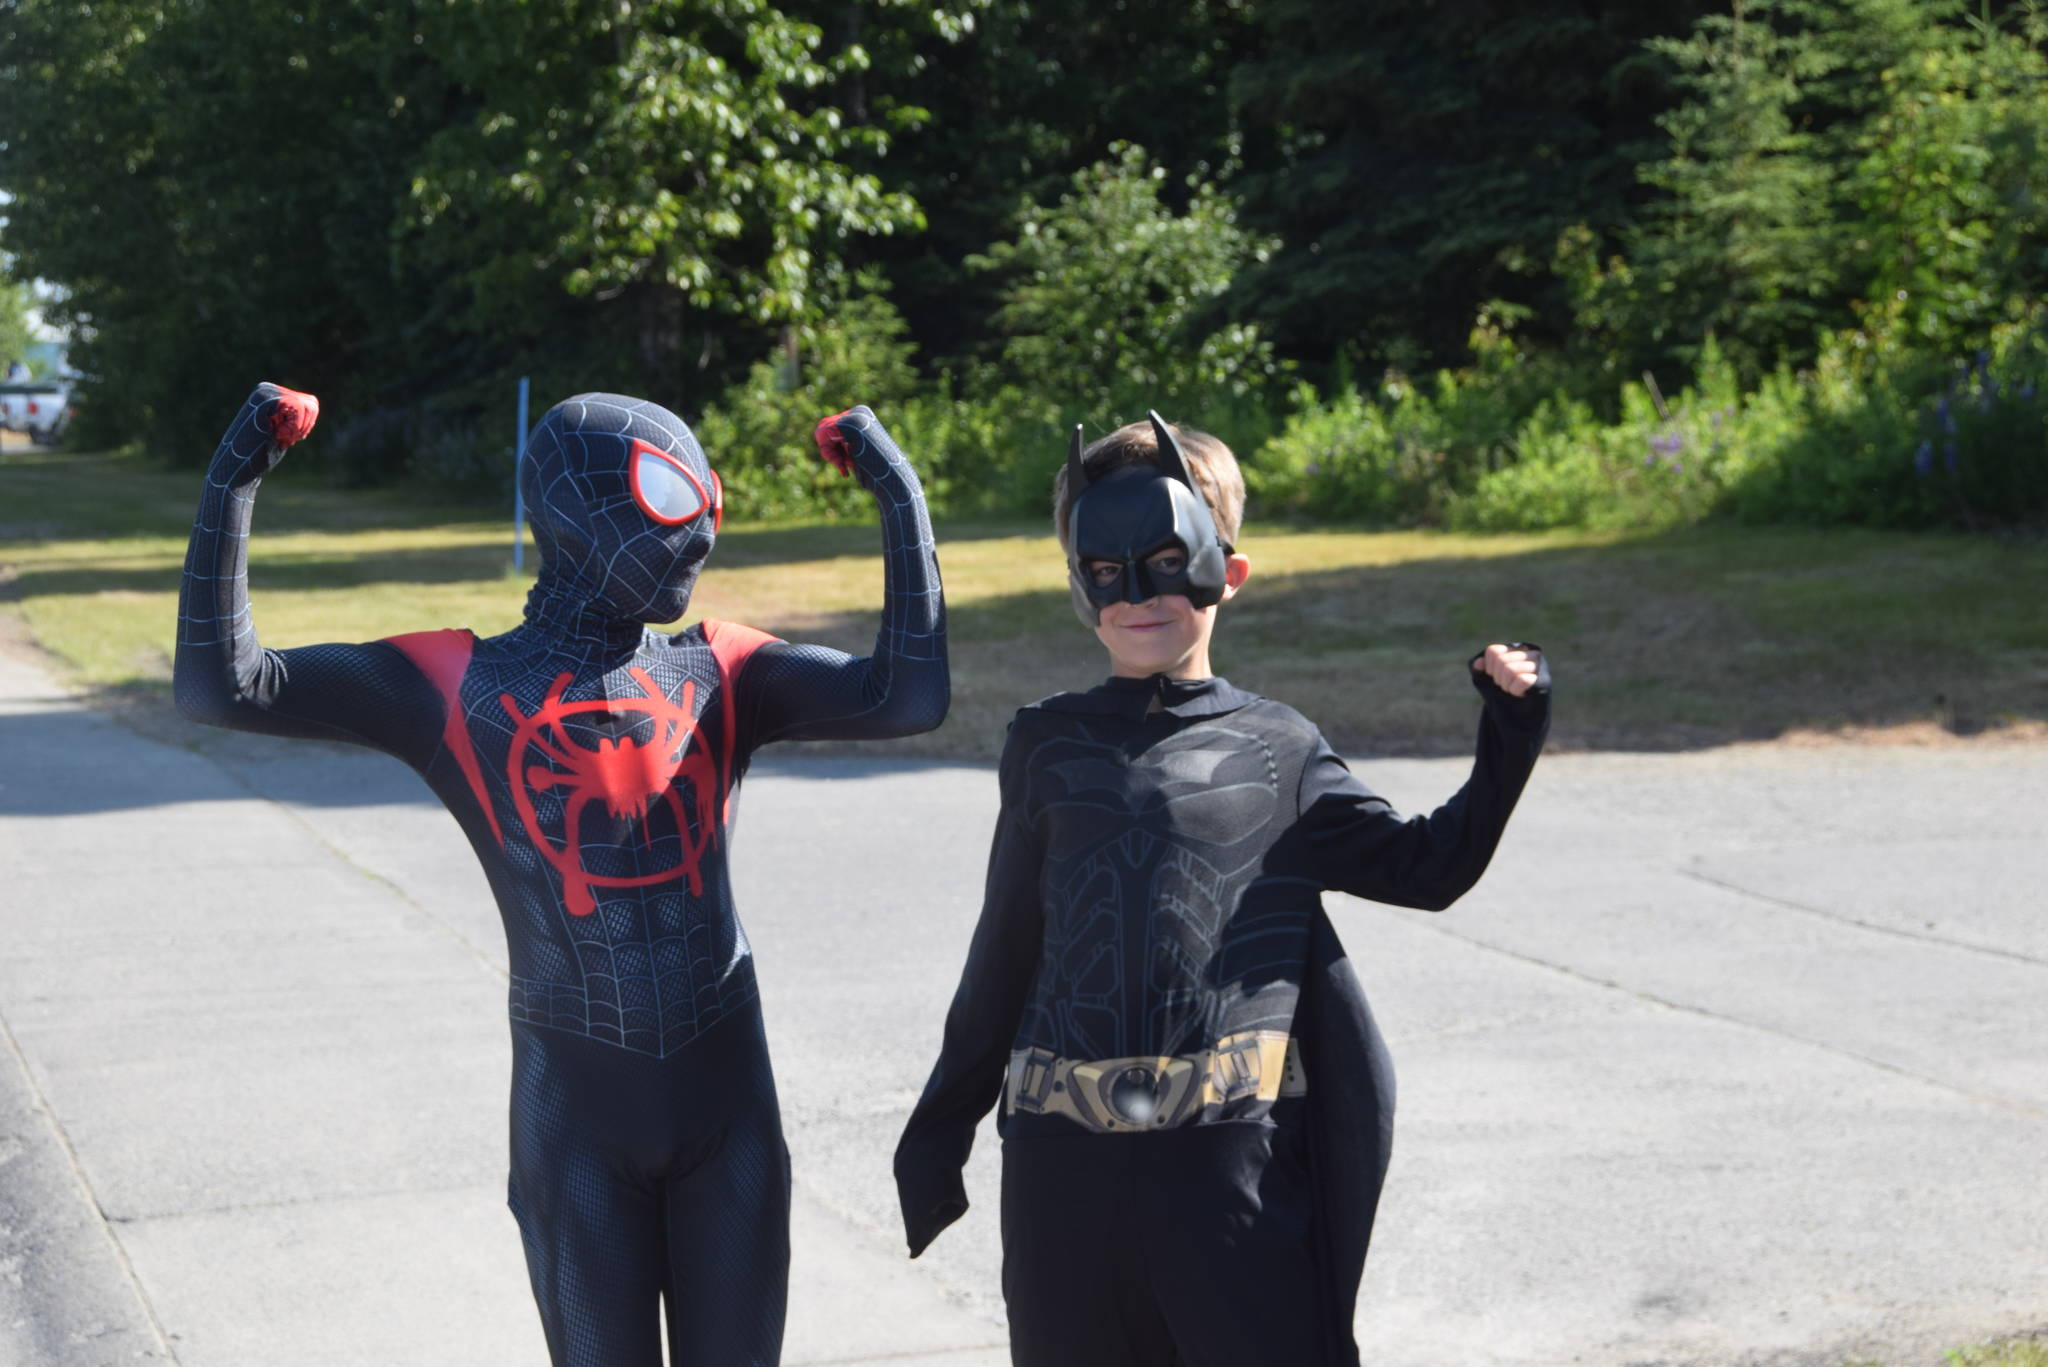 Spiderman and Batman flex their muscles during the July 4th parade in Kenai, Alaska. (Photo by Brian Mazurek/Peninsula Clarion)